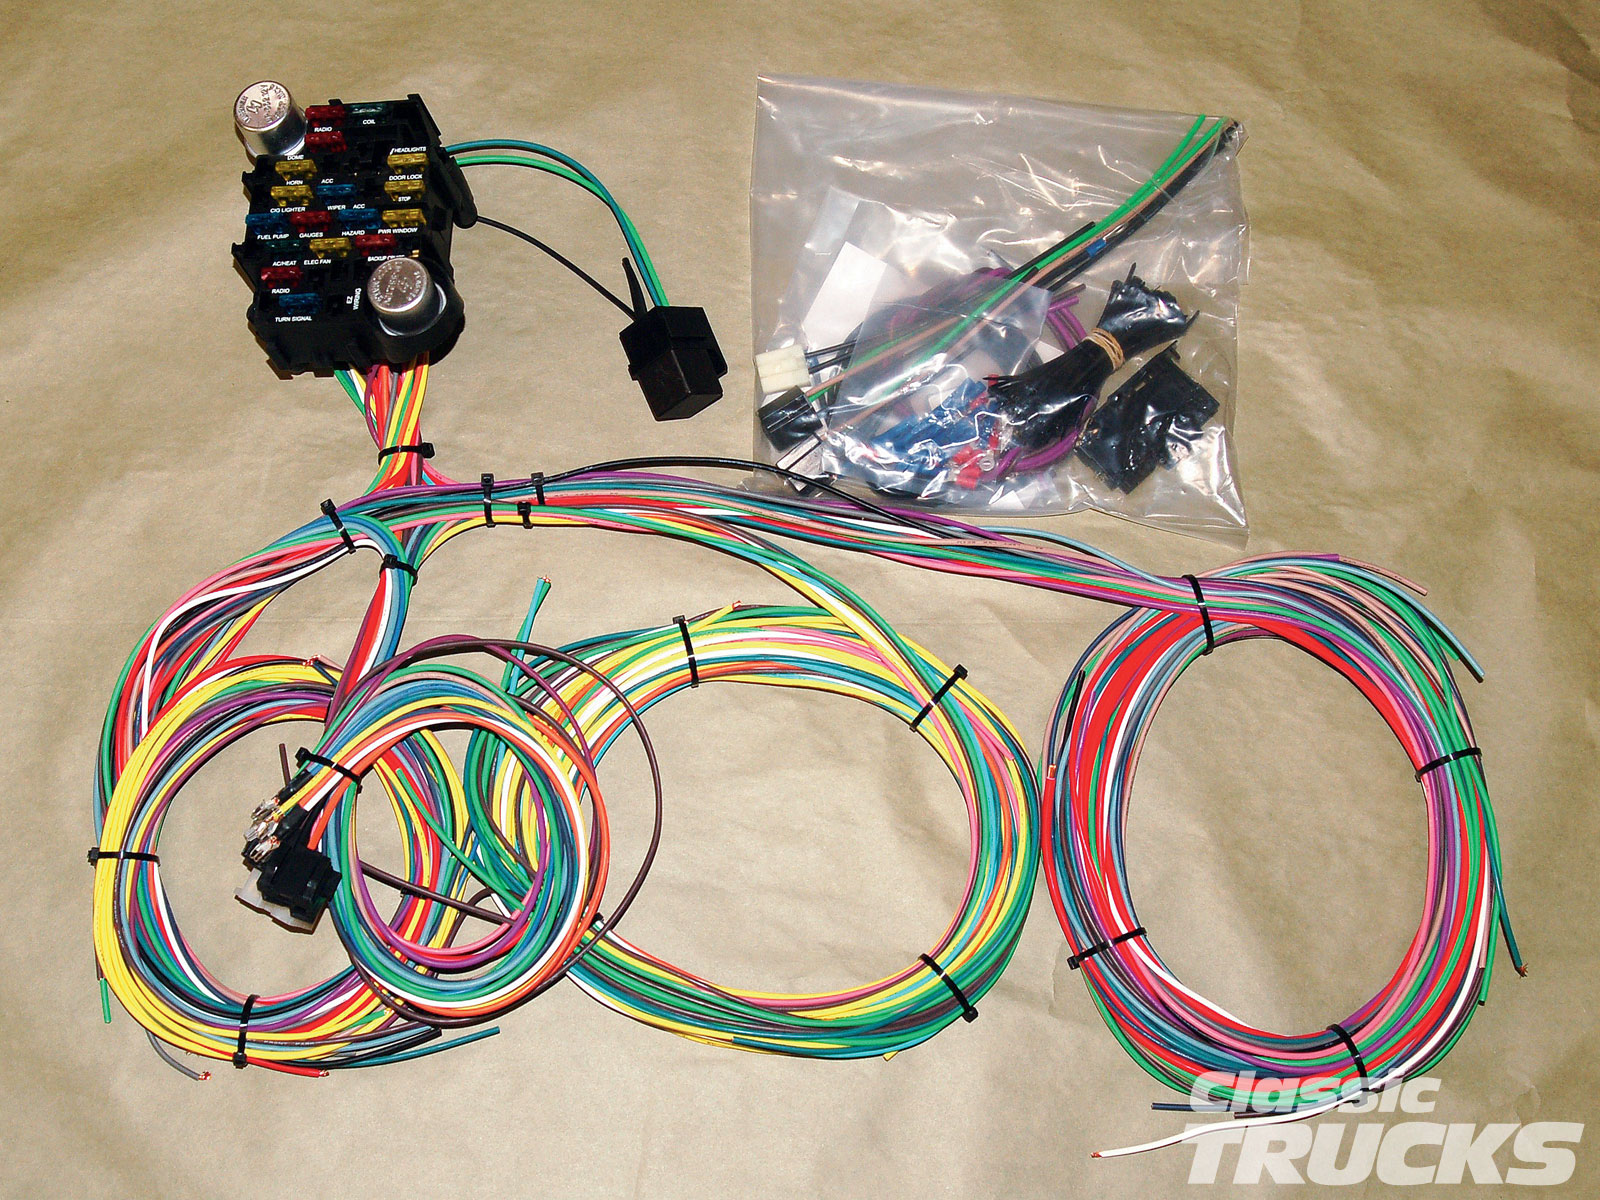 1010clt 02 o aftermarket wiring harness install kit?resize\\\=665%2C499 painless wiring harness australia tamahuproject org universal wiring harness australia at mr168.co